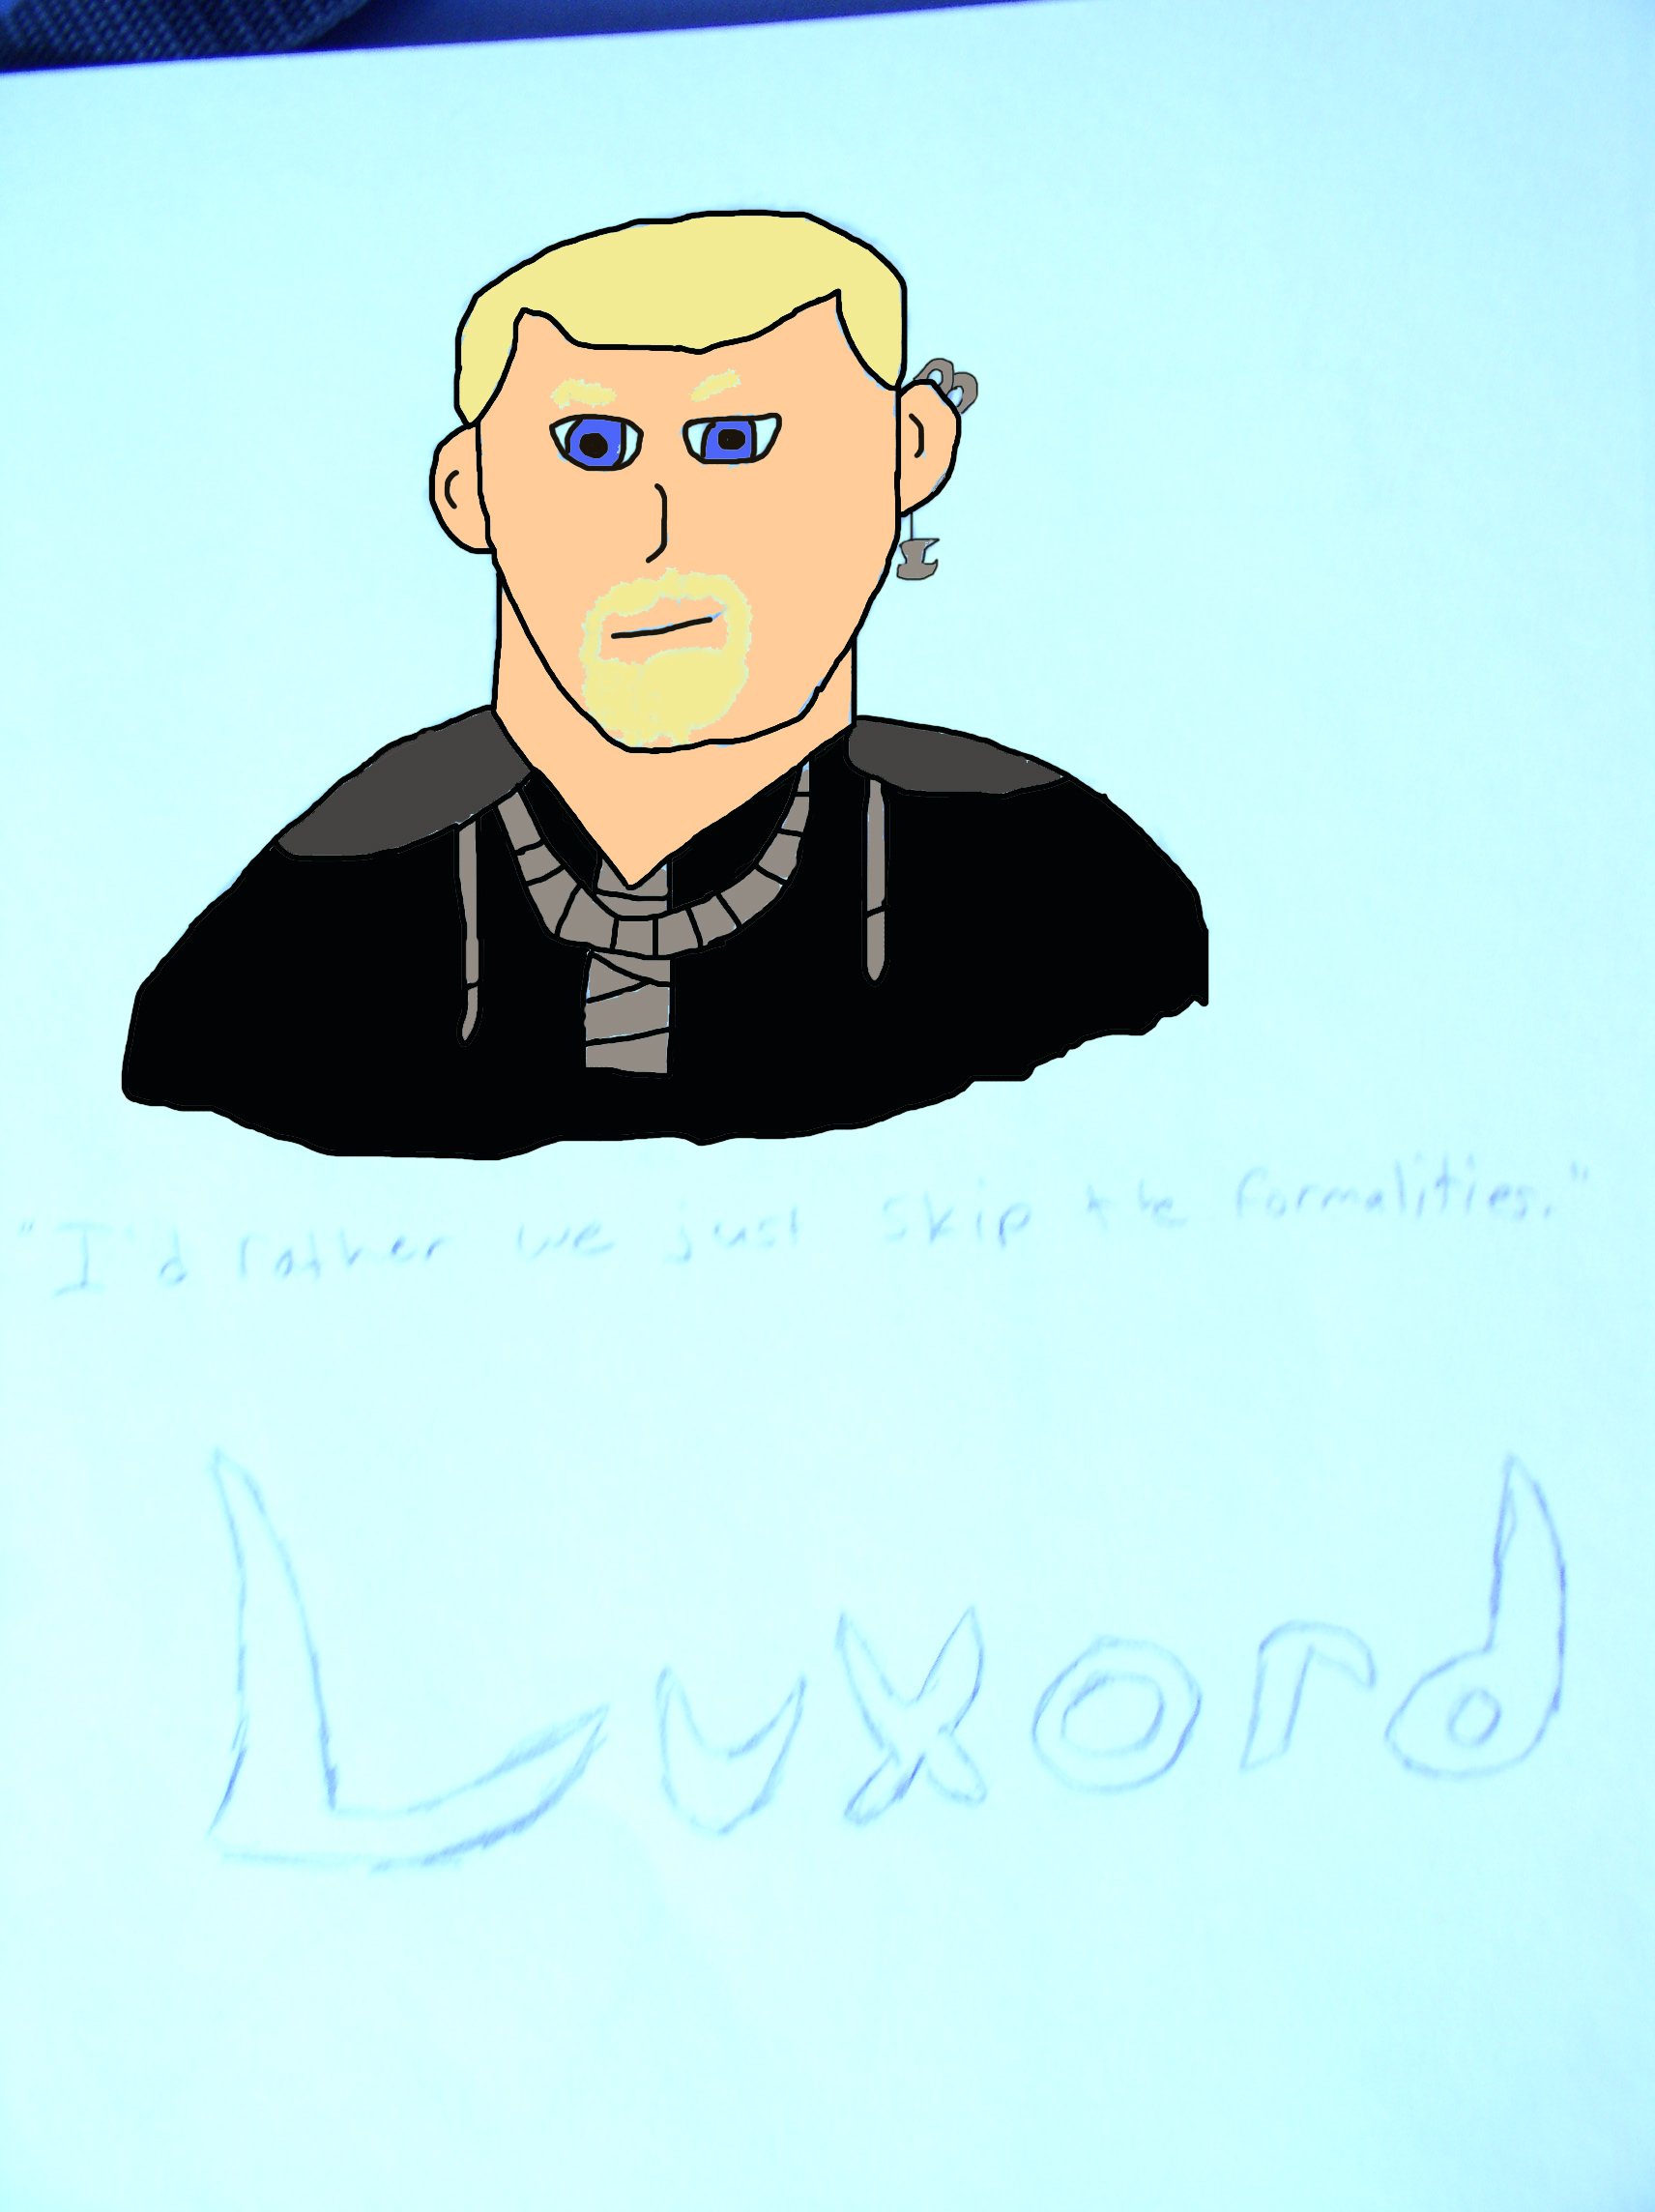 Luxord recolored by CaptiainIndianaSolo